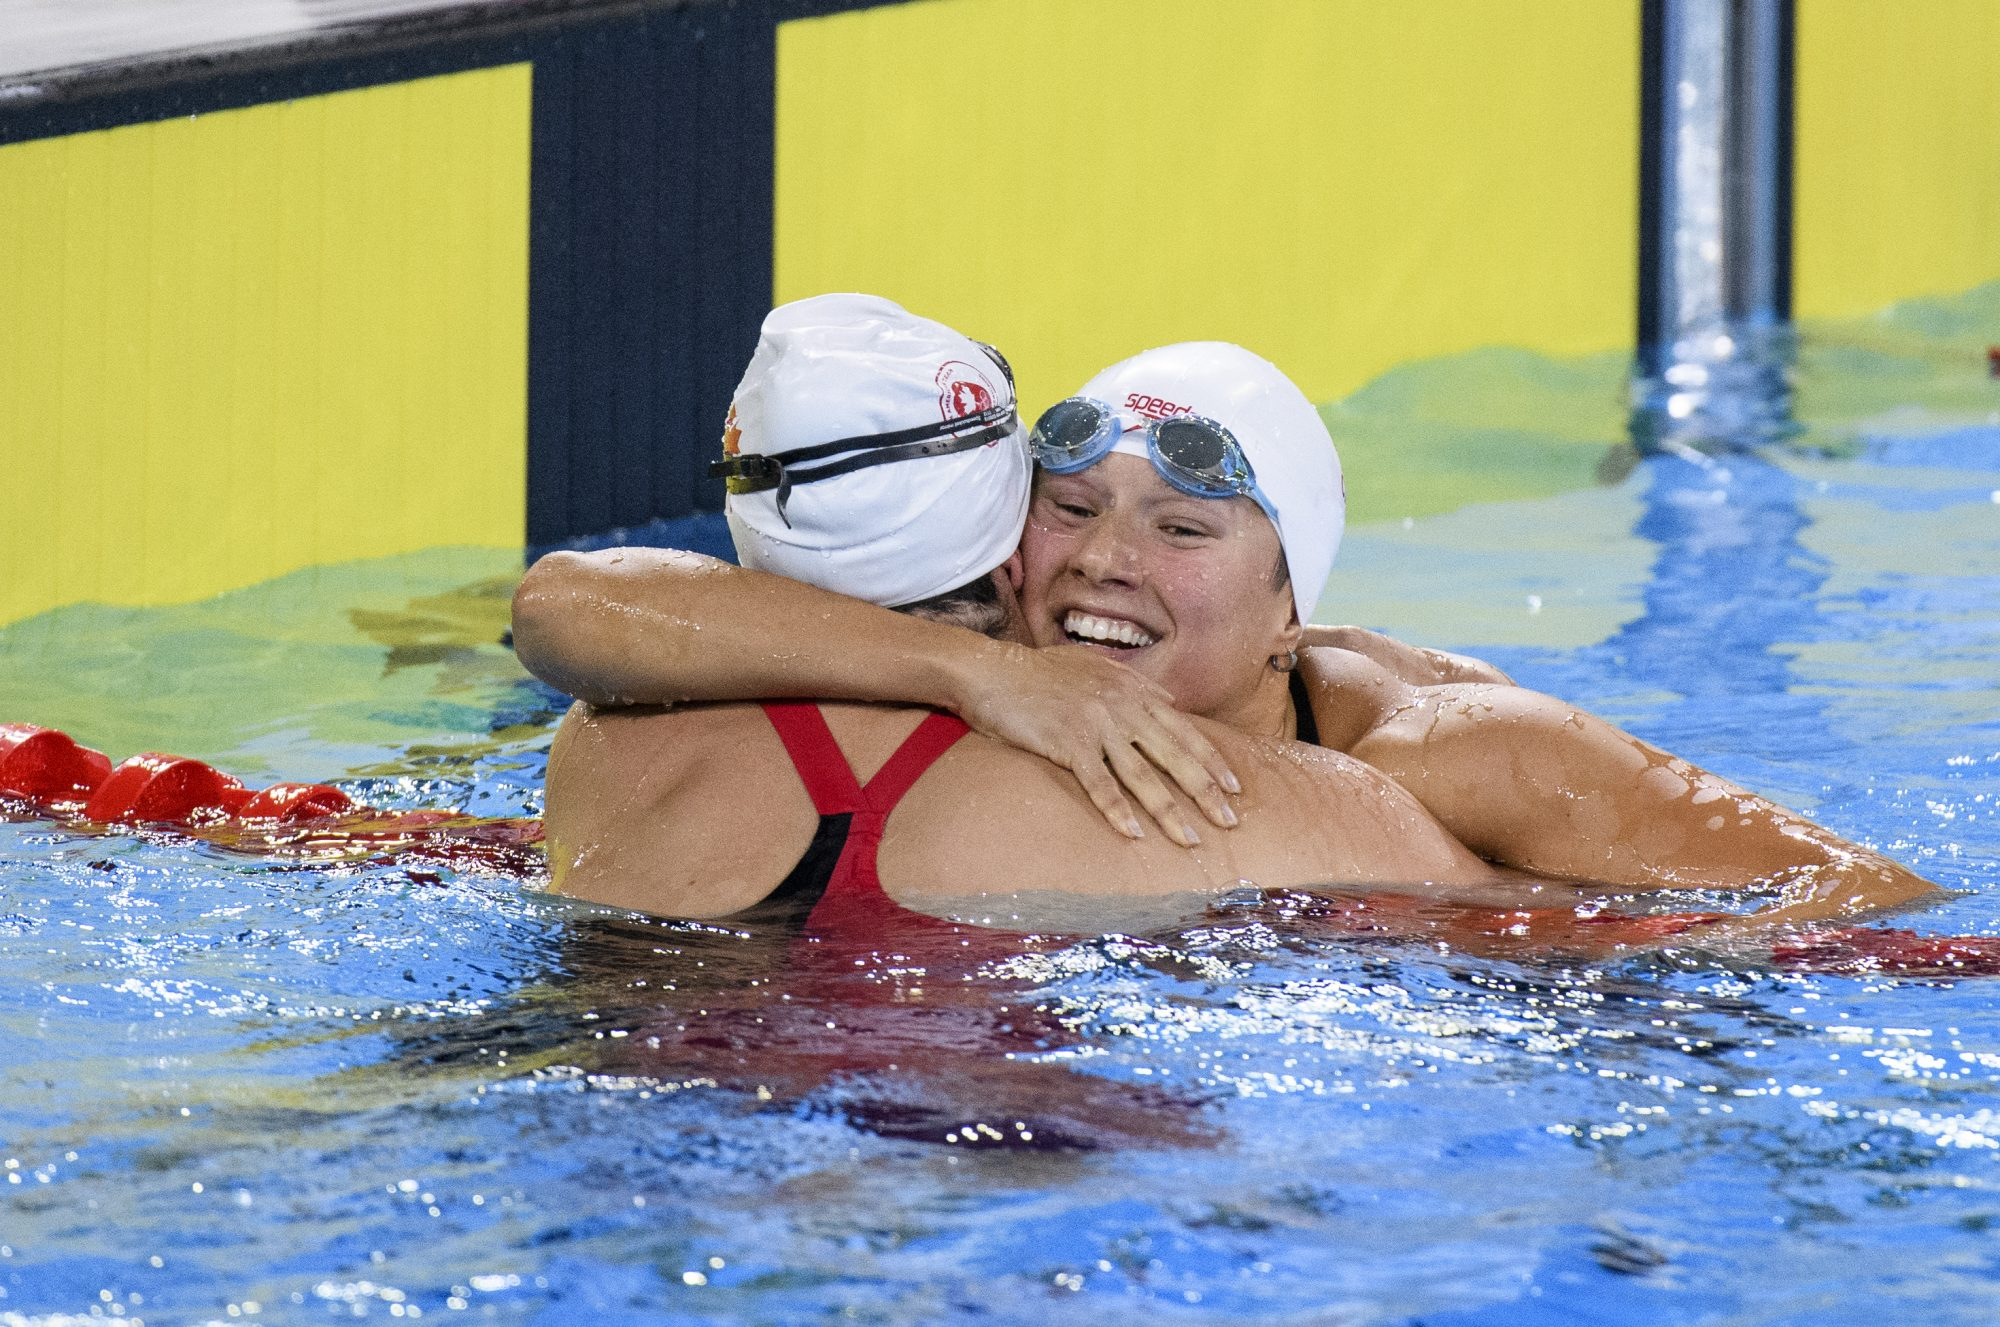 two swimmers hug in the water after a race